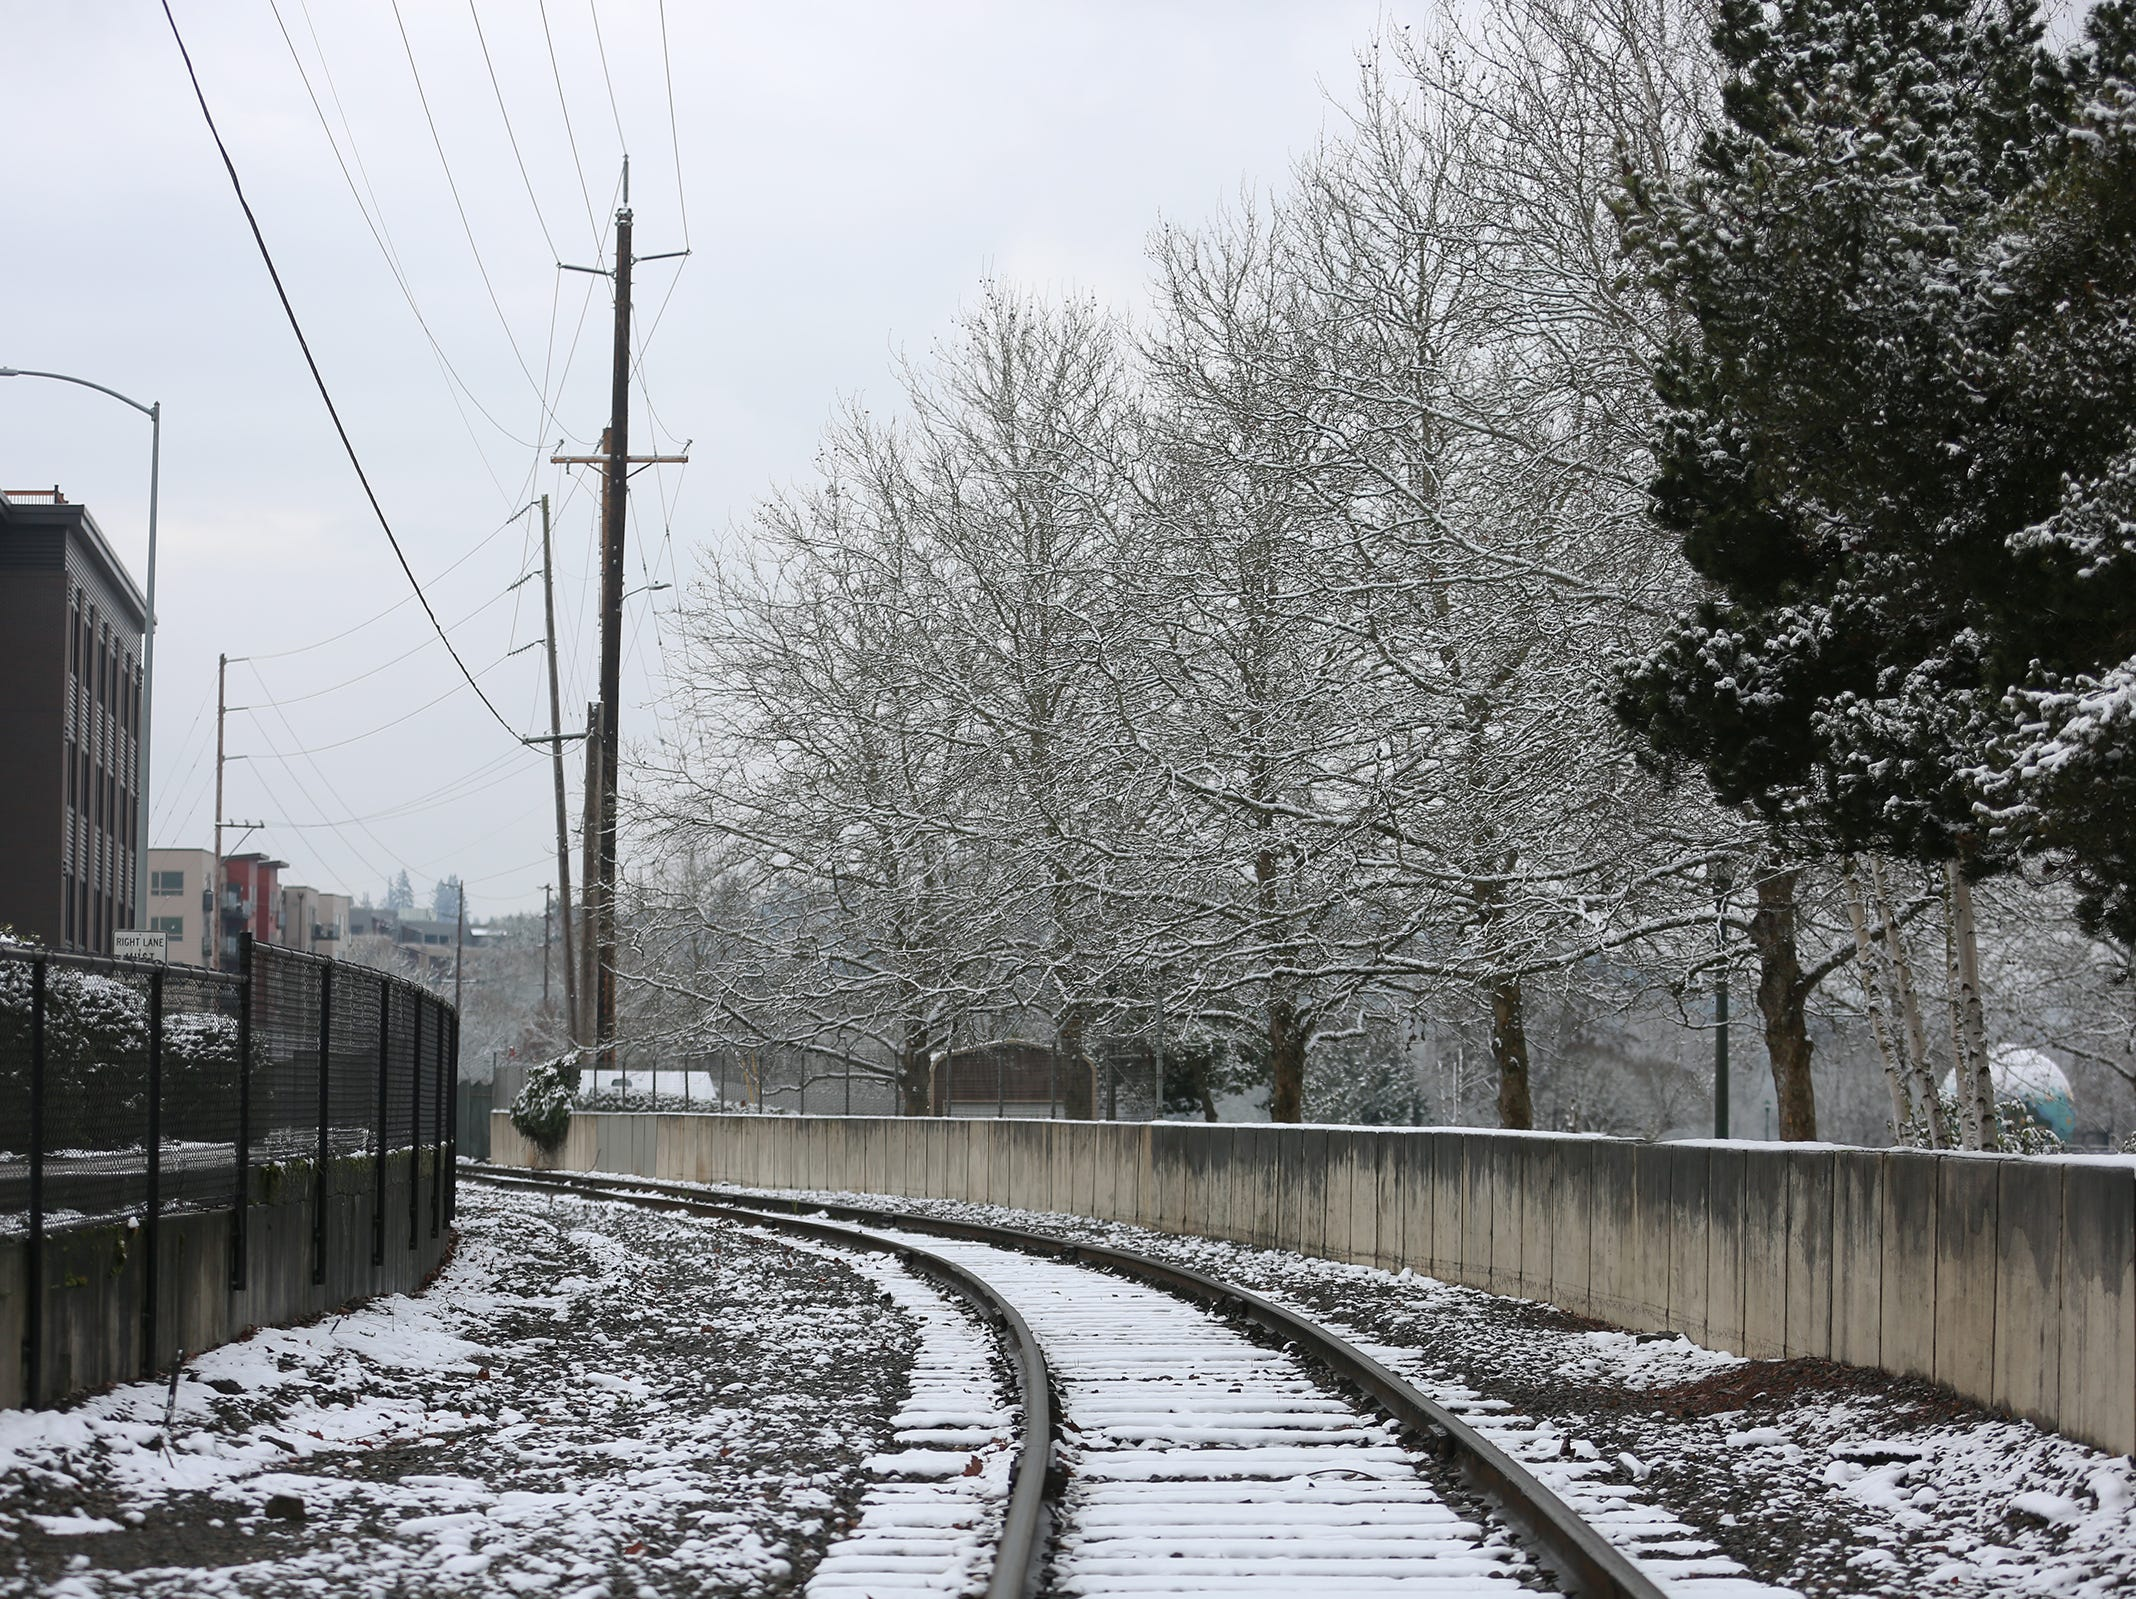 Train tracks in front of Riverfront Park are pictured in the snow in Salem on Tuesday, Feb. 5, 2019.